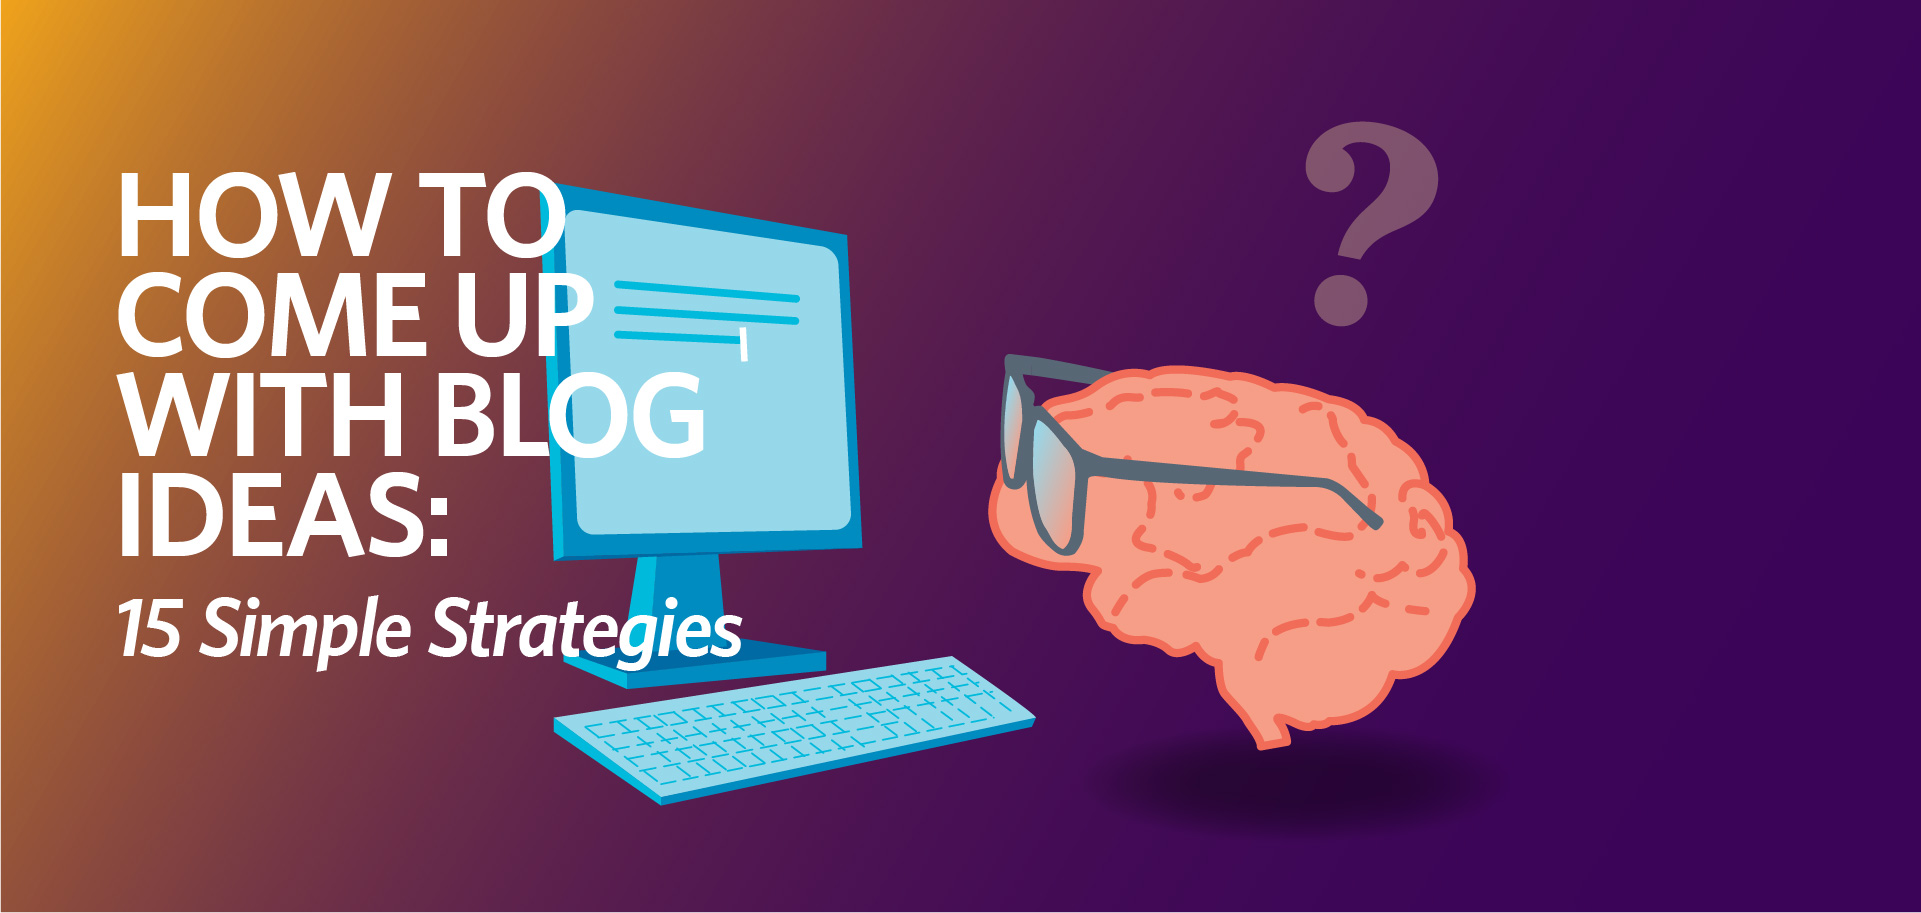 How to come up with blog ideas, writer's block, Kettle Fire Creative blog blog ideas How to come up with blog ideas: 15 simple strategies fi